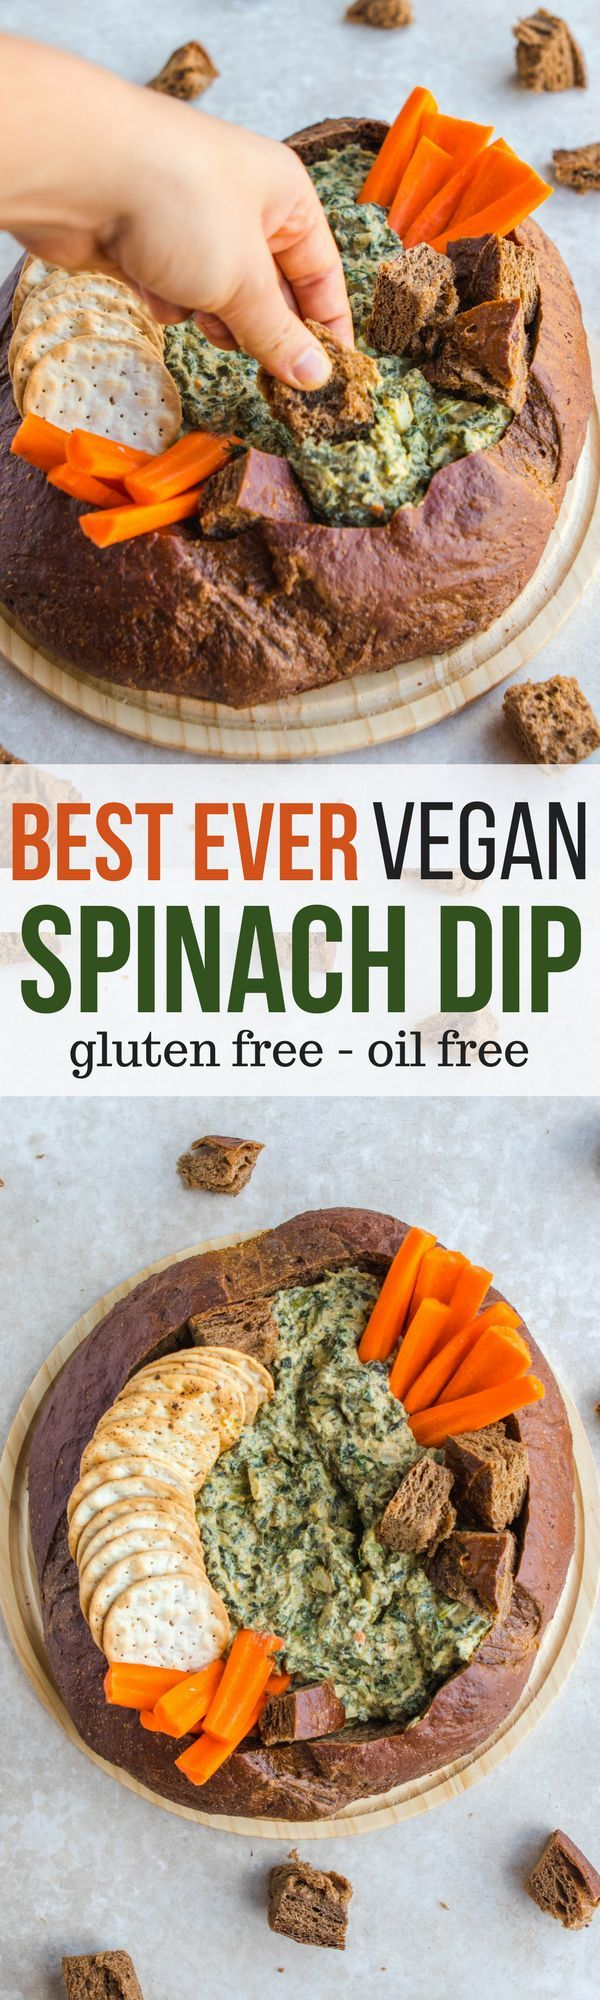 Best Ever Vegan Spinach Dip - Easy Healthy Holiday Party Appetizer